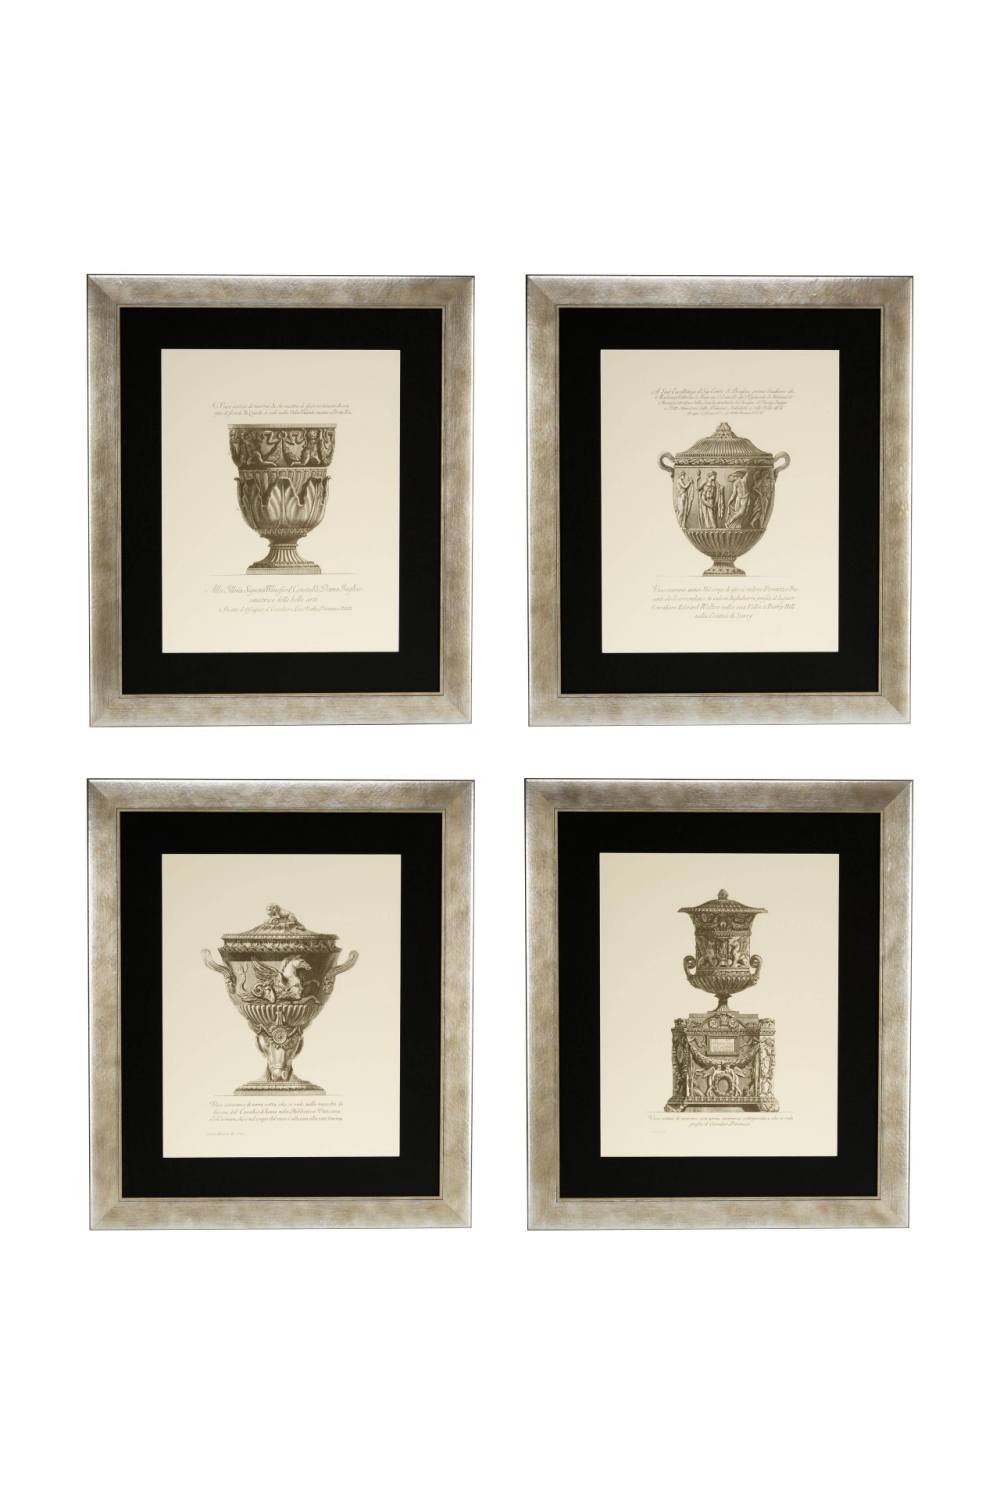 Antique Vases Prints | Eichholtz Giovanni Battista | OROA Modern Decor